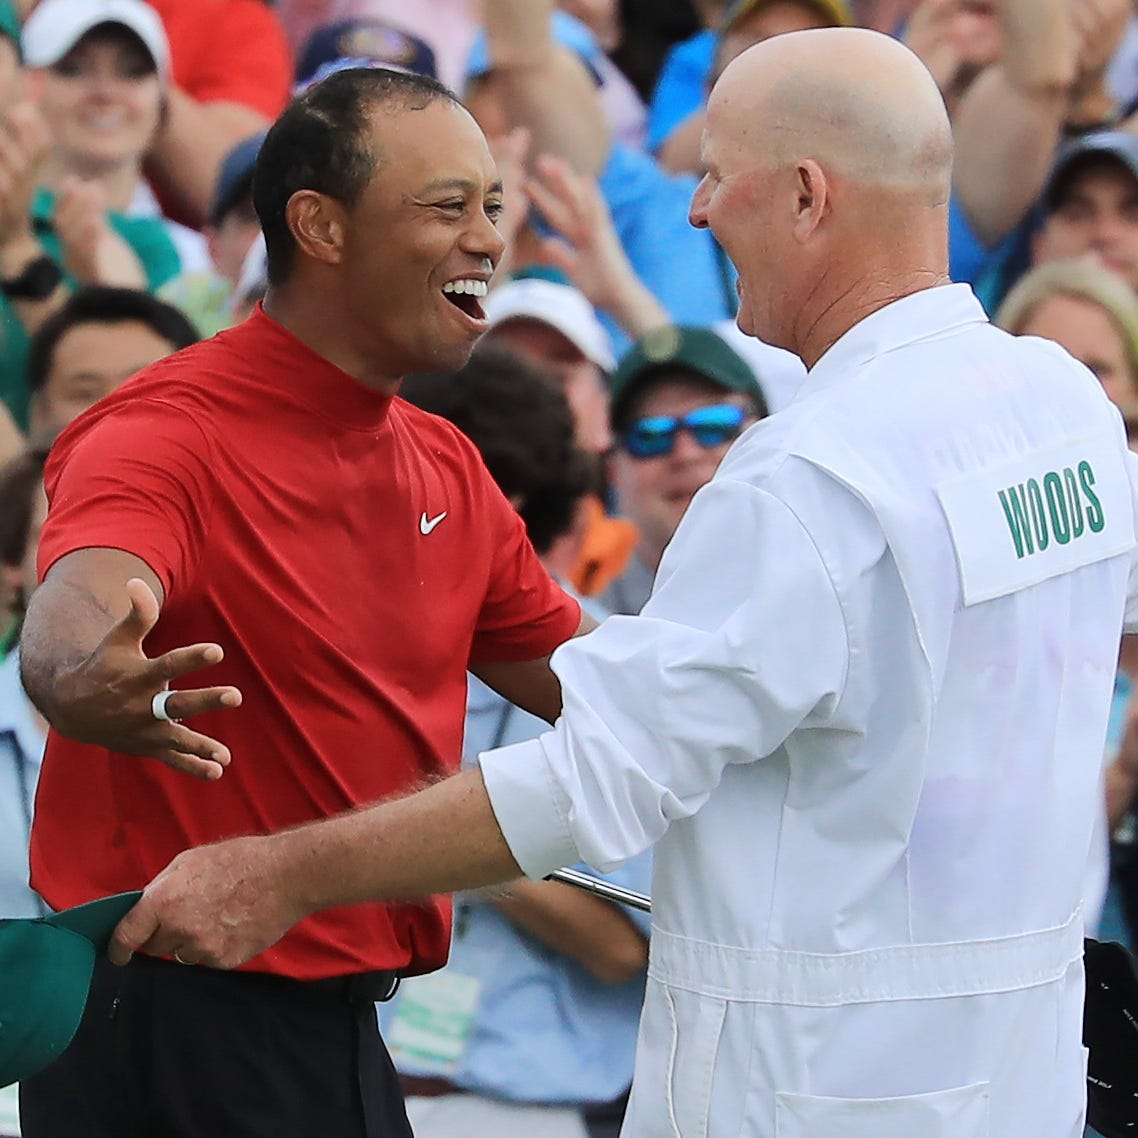 Tiger Woods' caddie, Joe LaCava, details aftermath of Masters victory